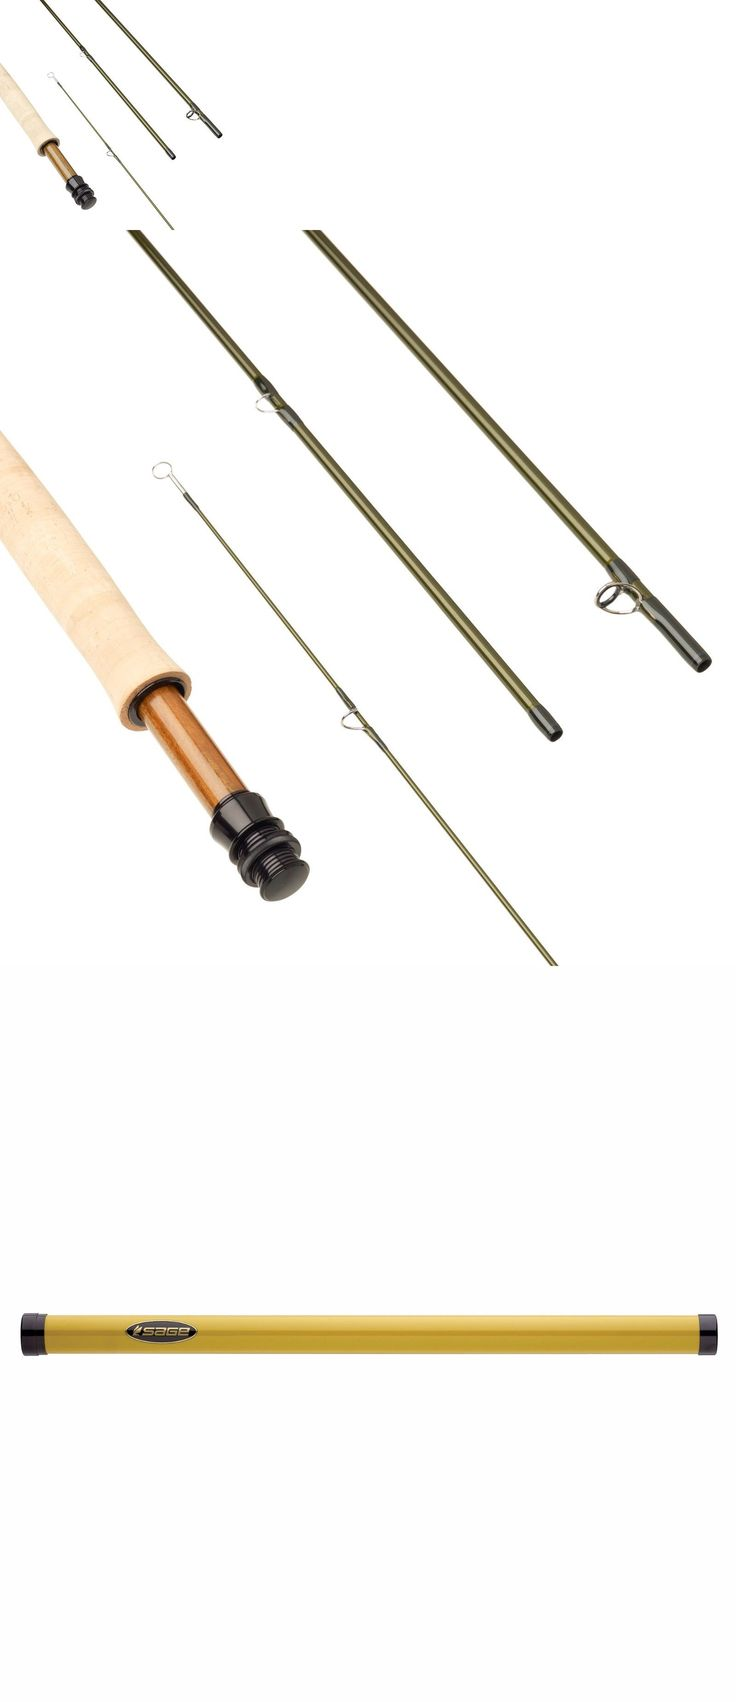 17 best ideas about fly fishing rods on pinterest fly for Fly fishing gear closeouts